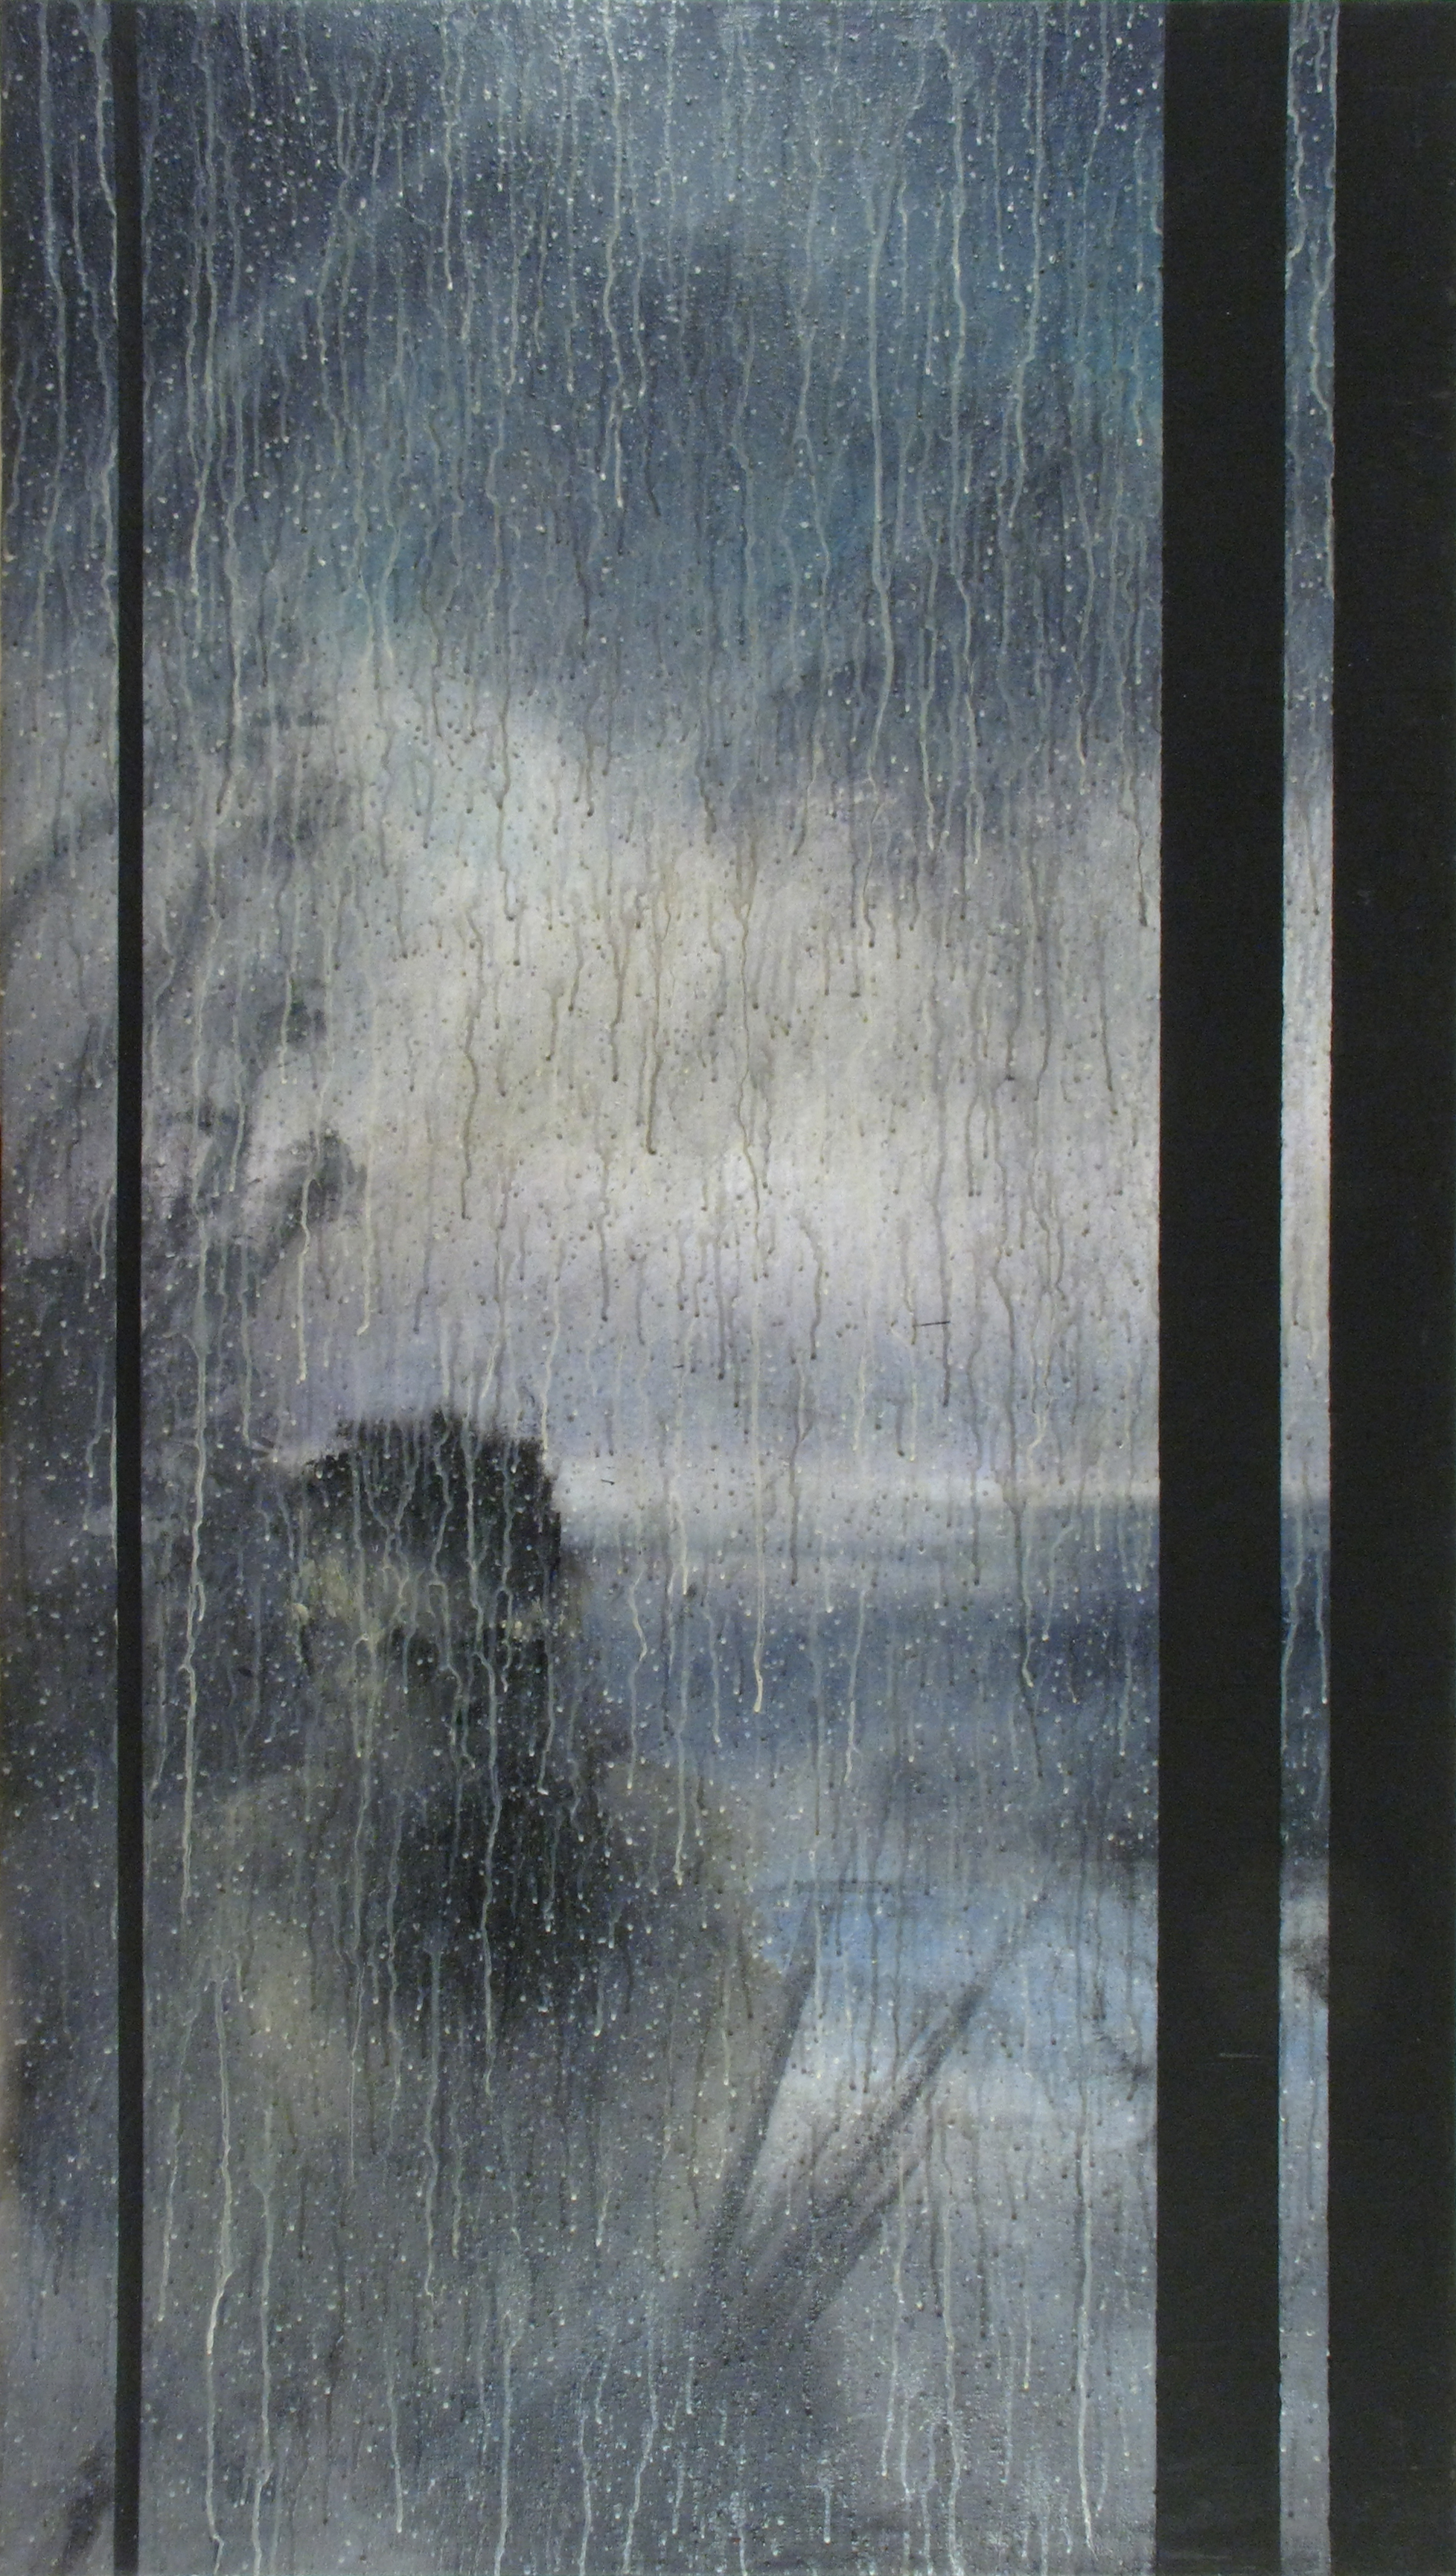 Rain, 1985 — Richard Hambleton